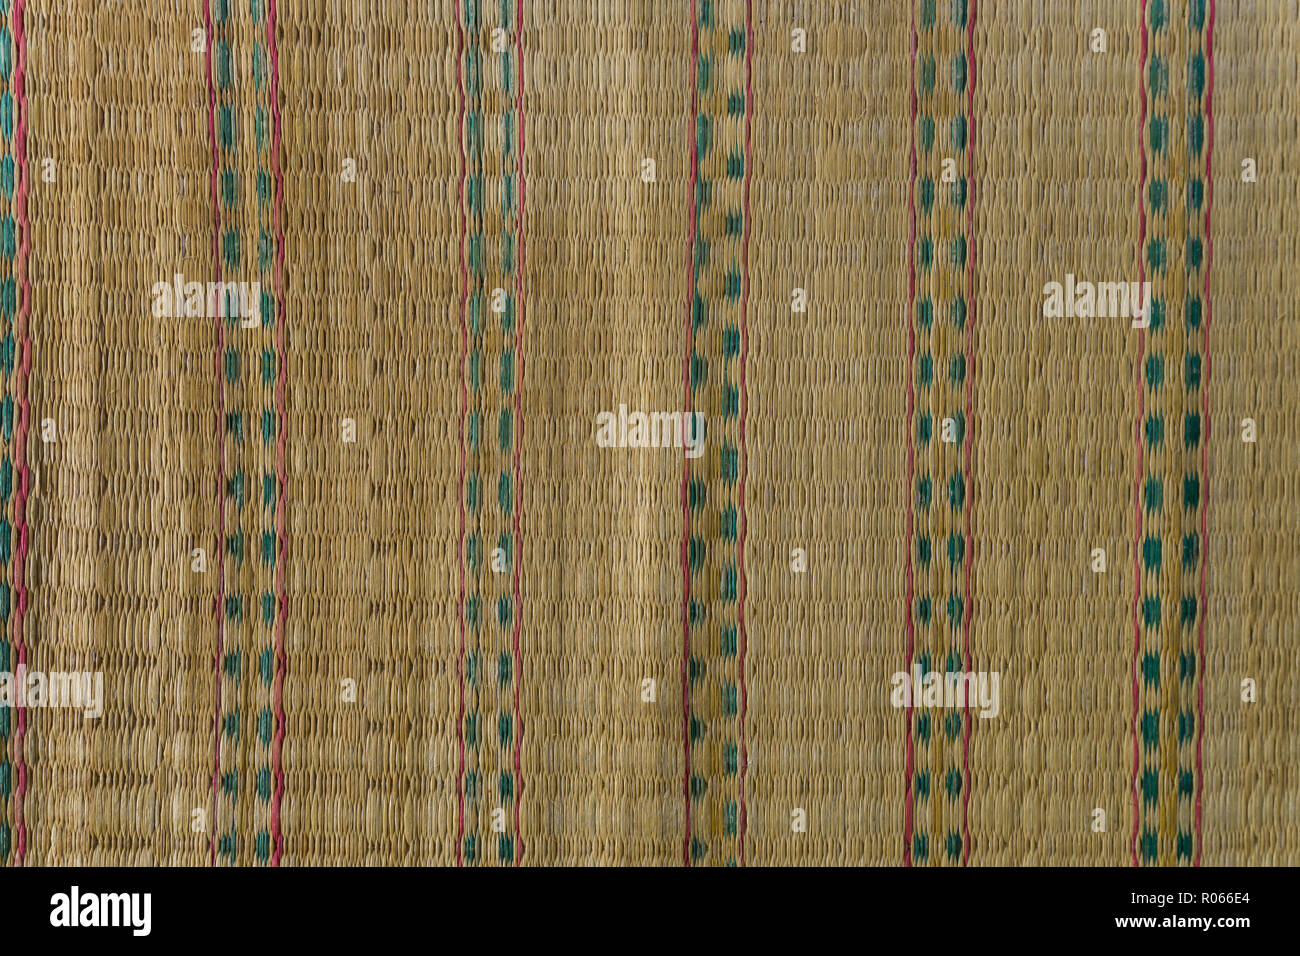 papyrus mat stock photos